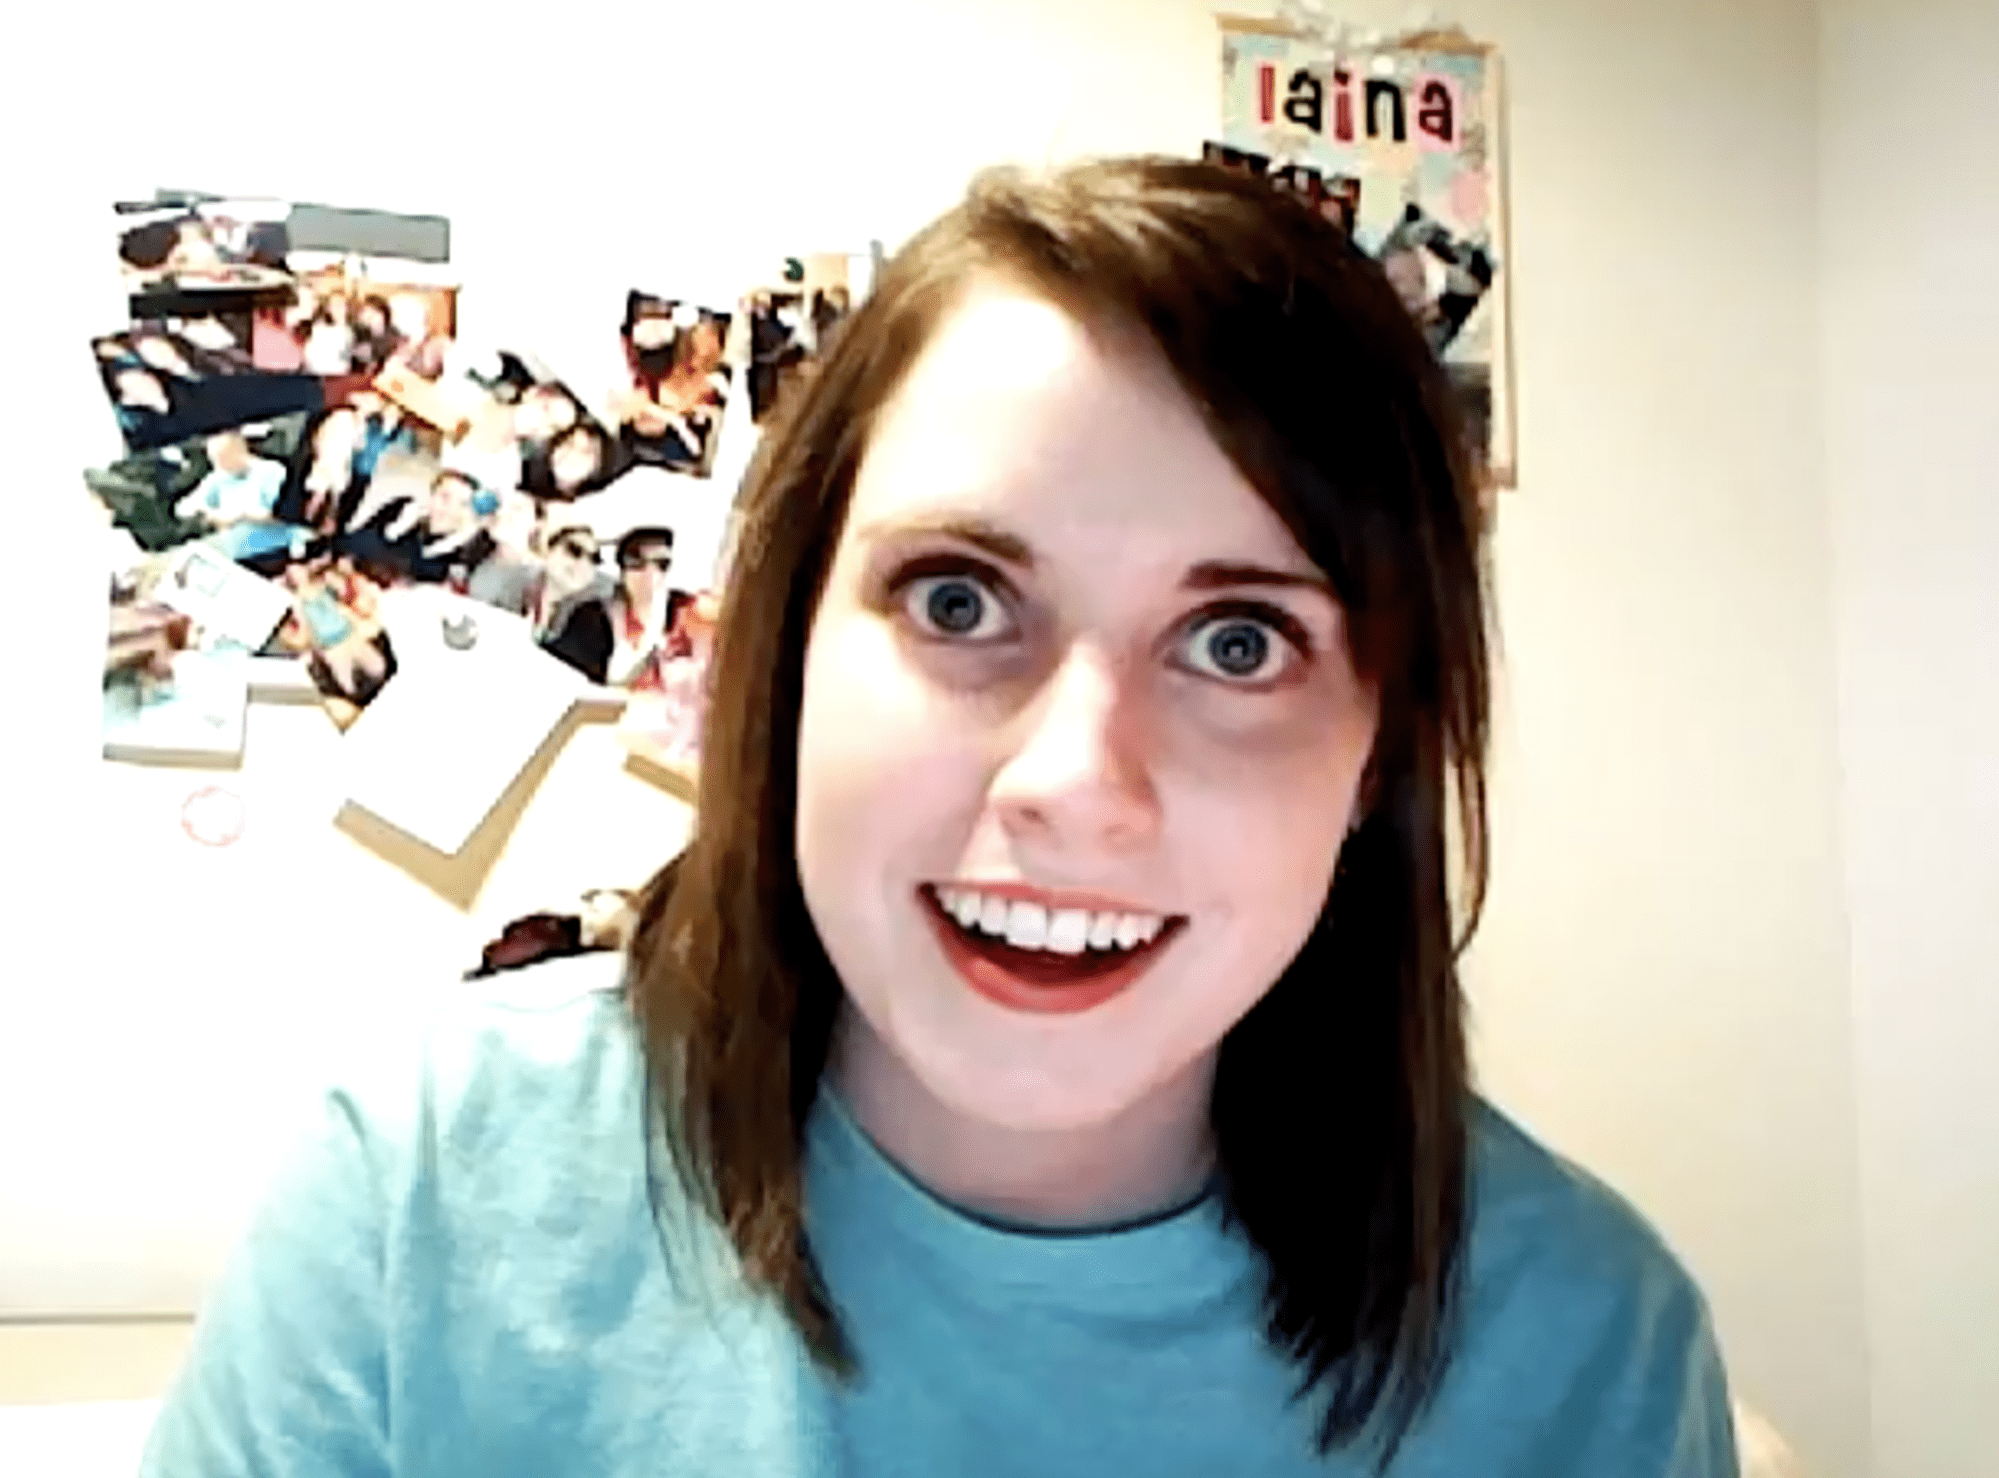 Overly Attached Girlfriend by Laina